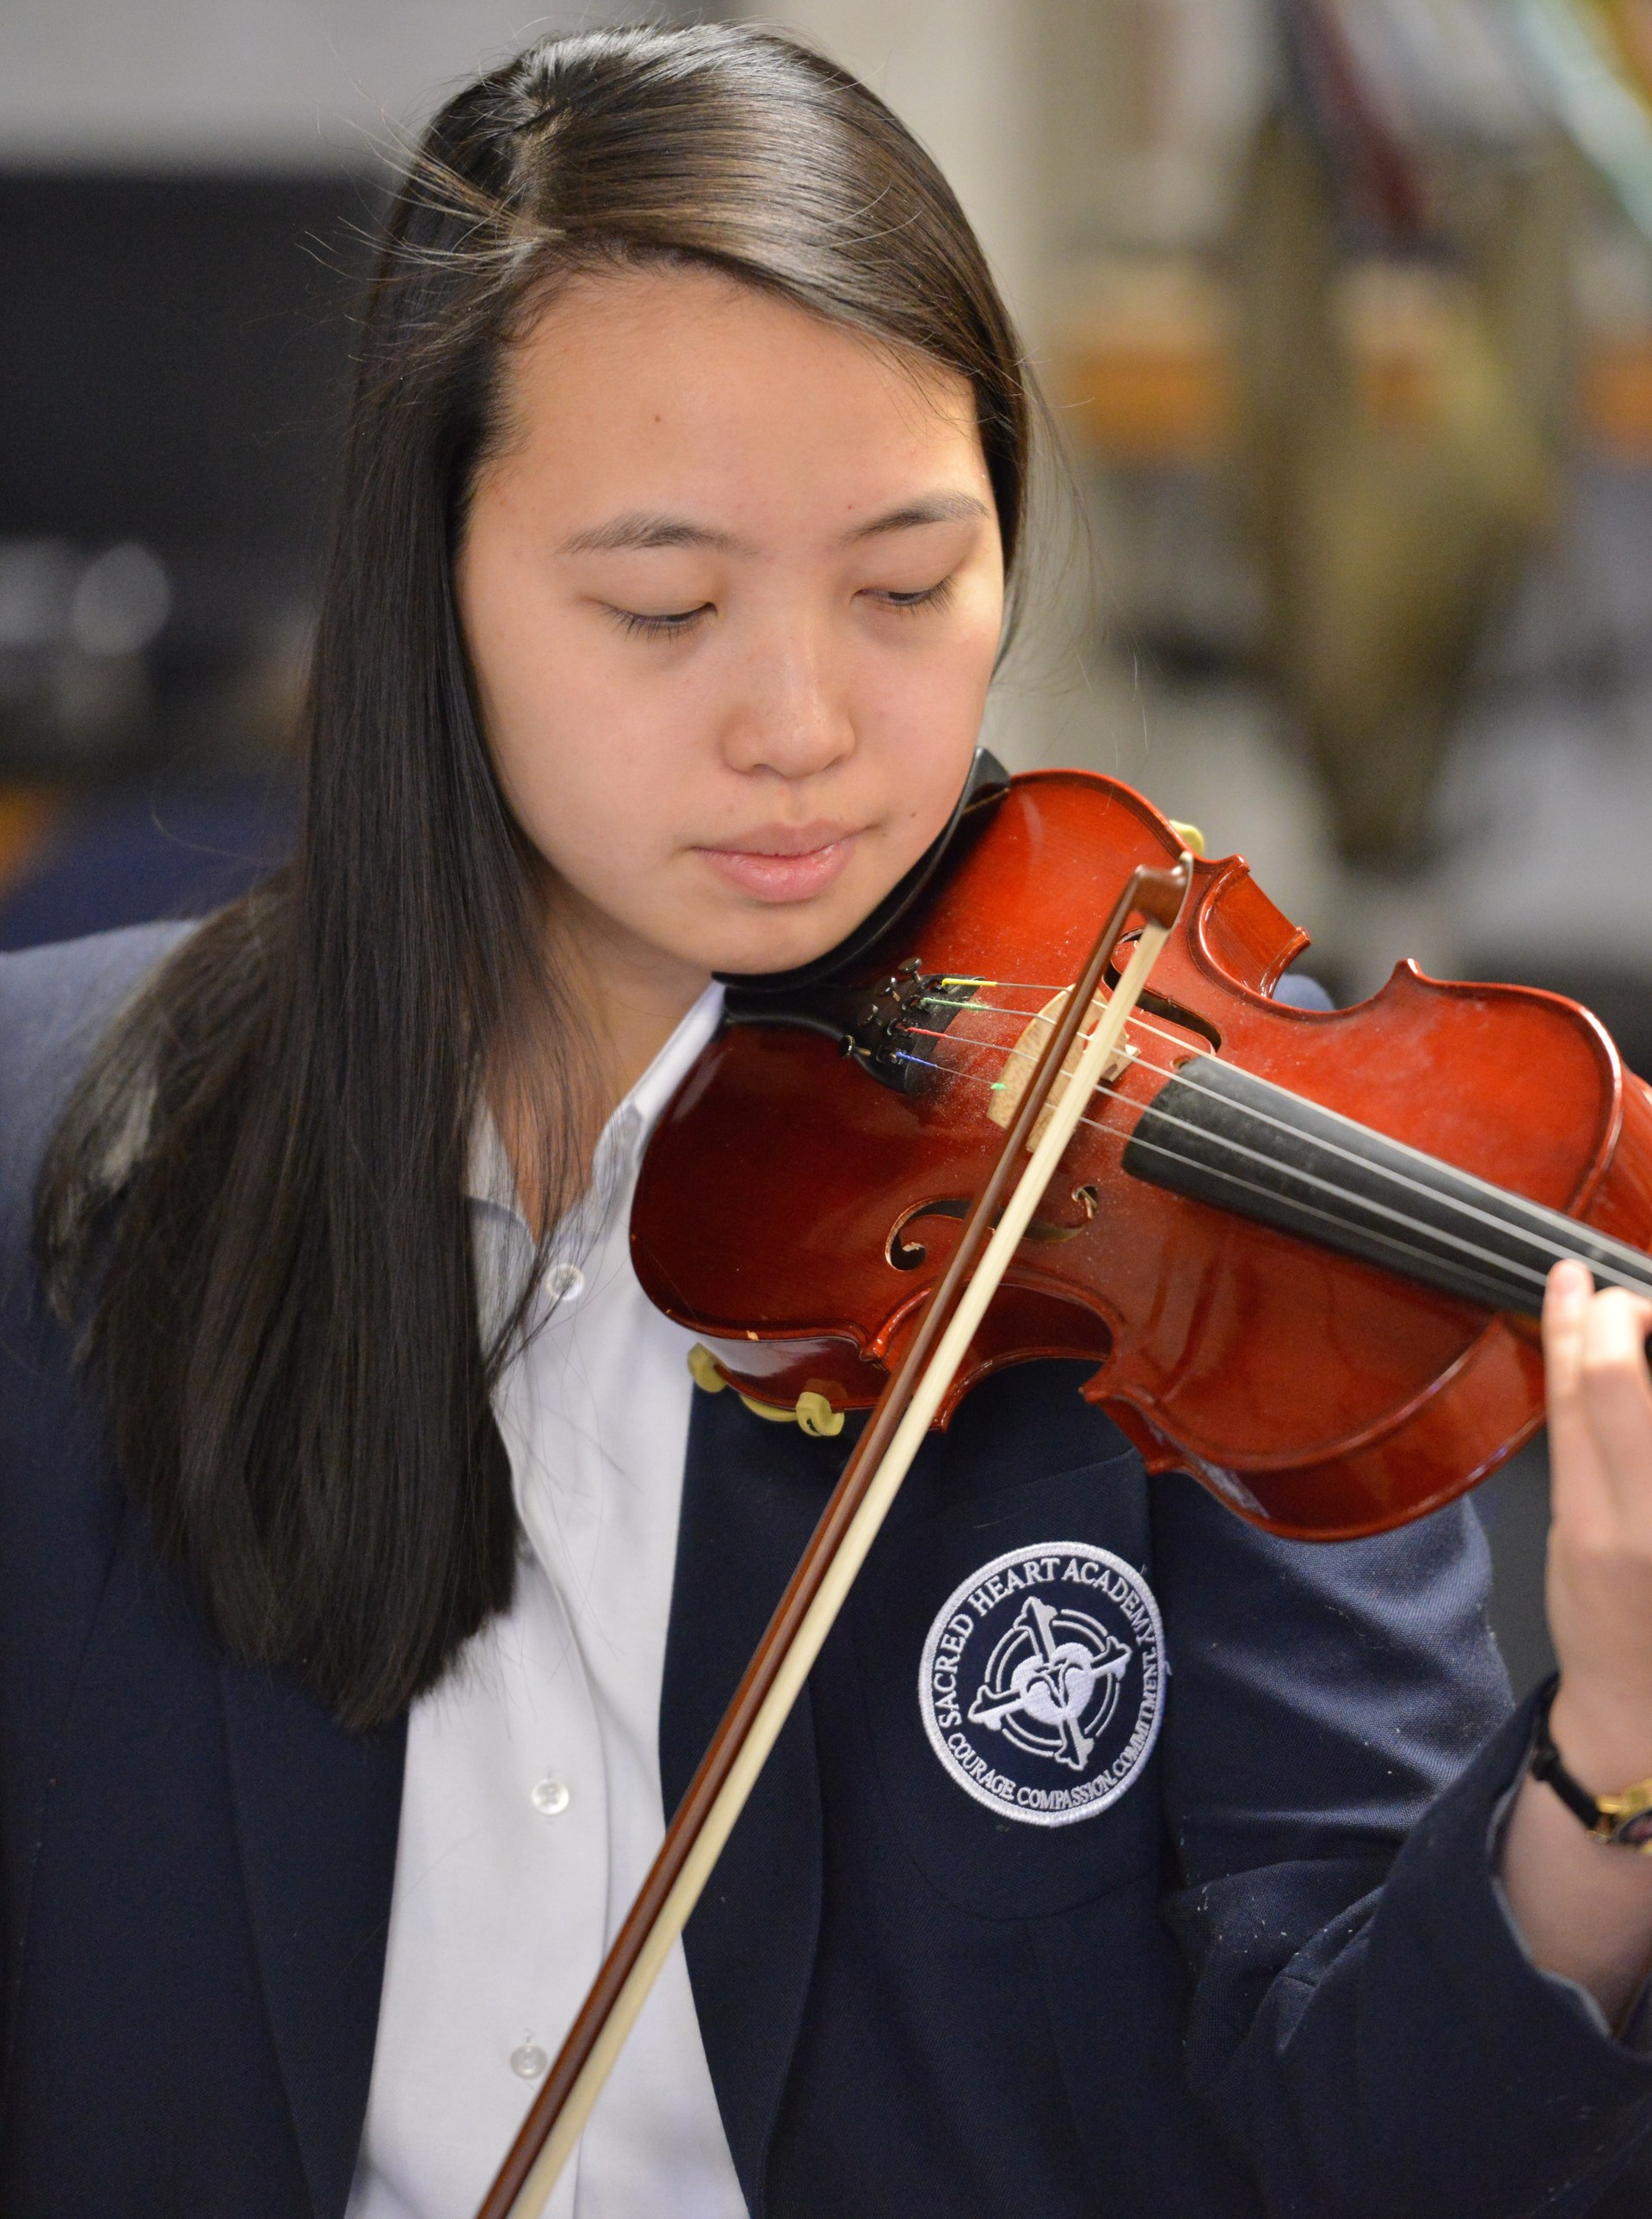 SHA student playing violin